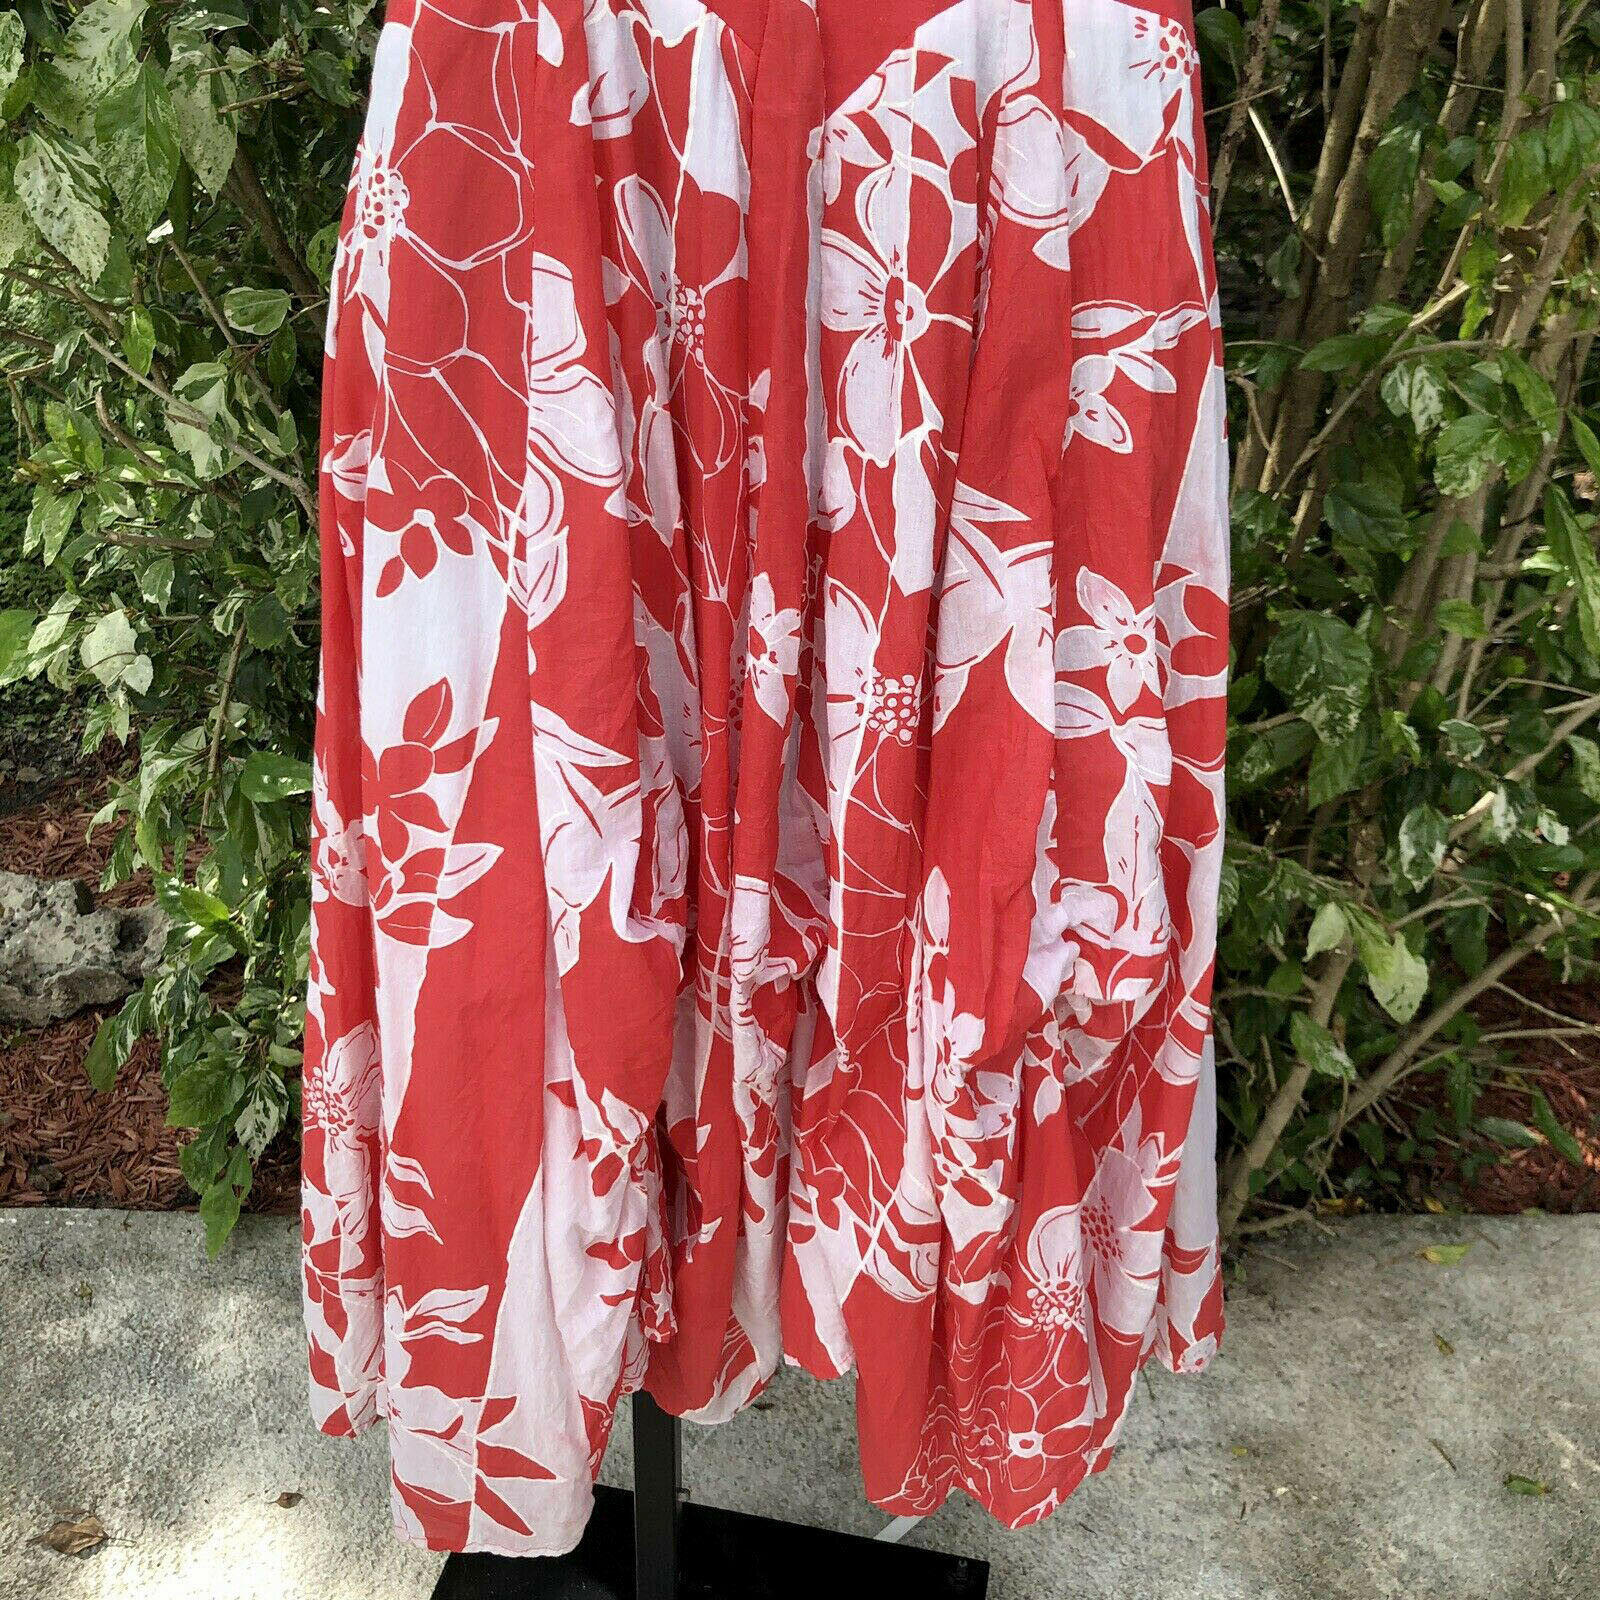 Vasna Desire Sleeveless Fit Flare Dress Size Small Coral White Floral Hawaiian image 8